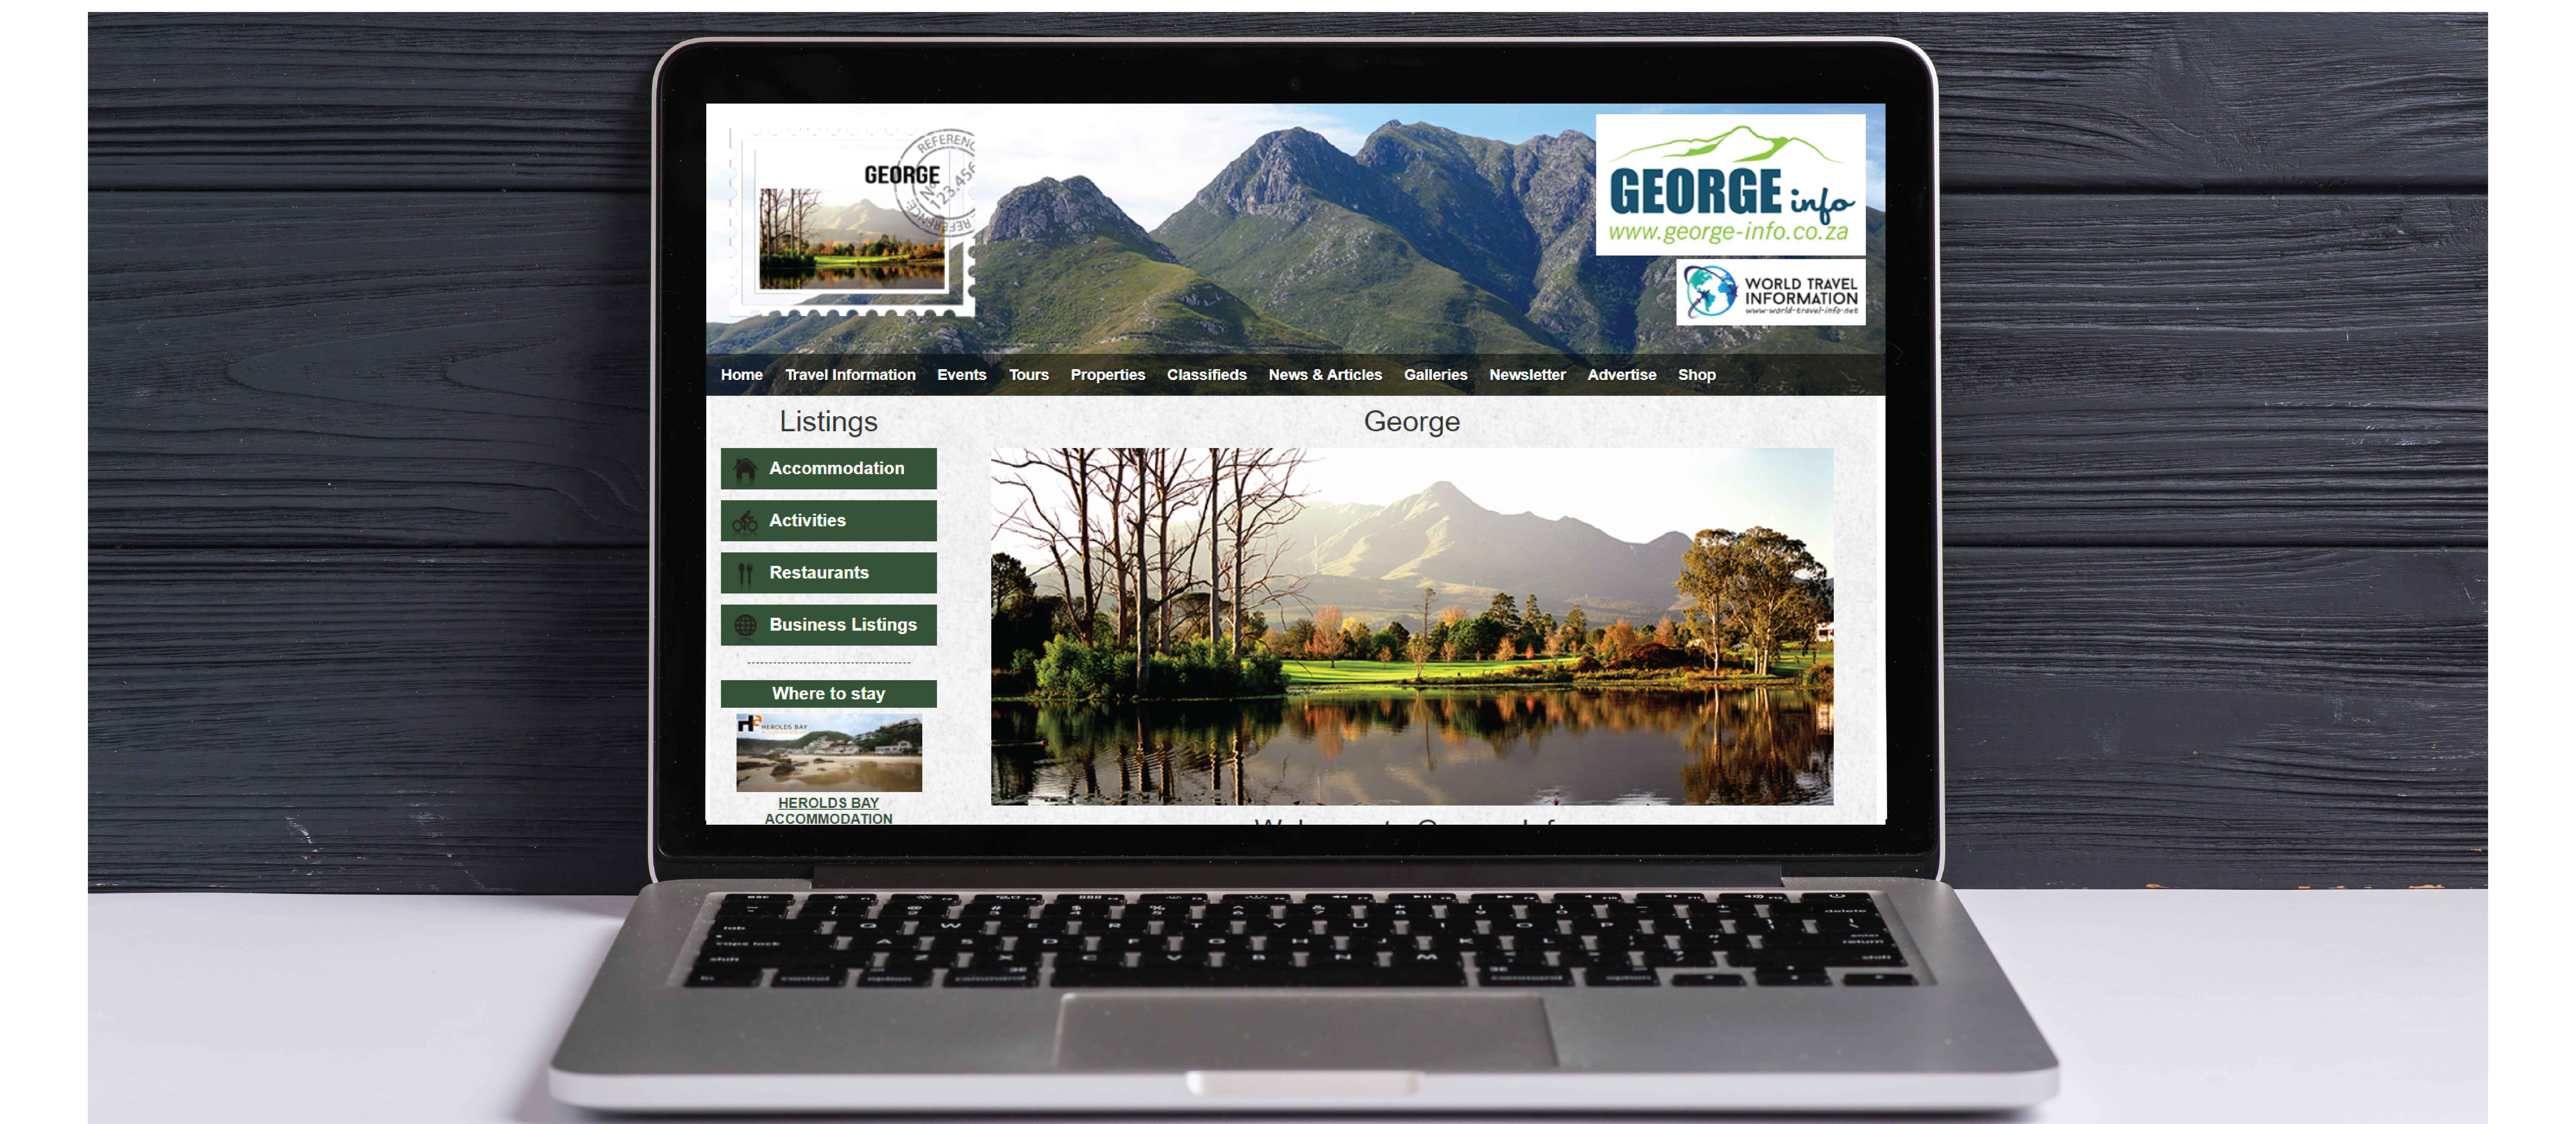 Integrated Marketing, marketing in South Africa, Western Cape, George